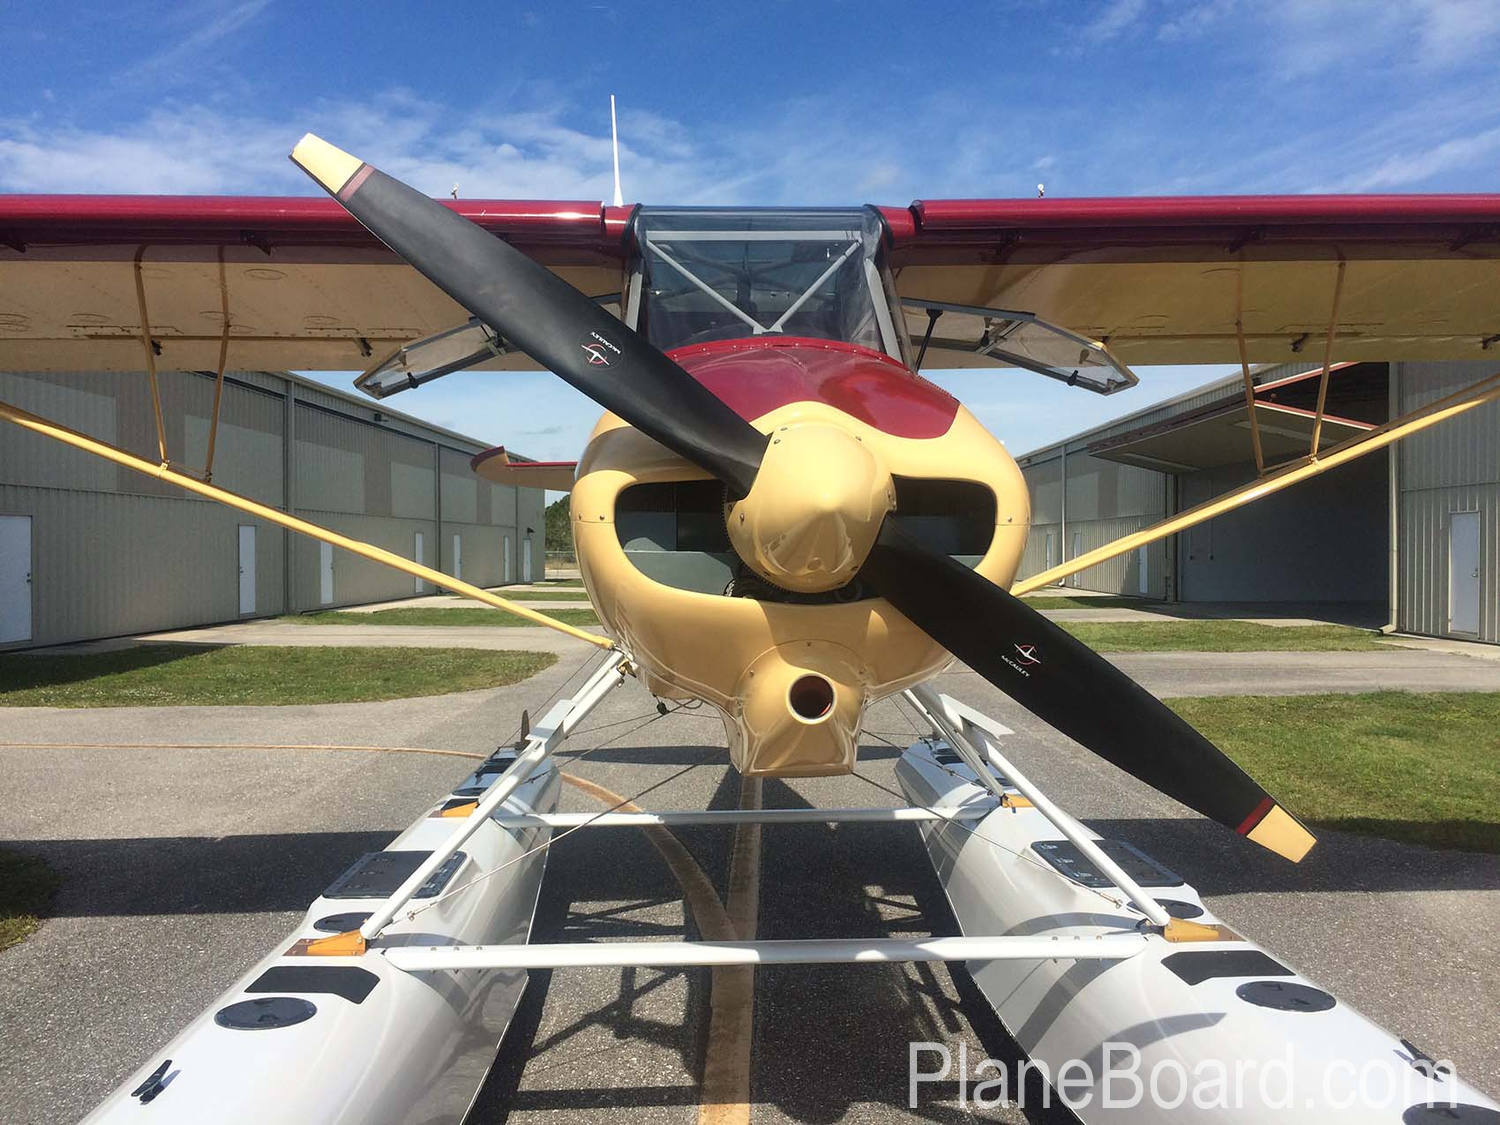 2010 Piper Super Cub primary